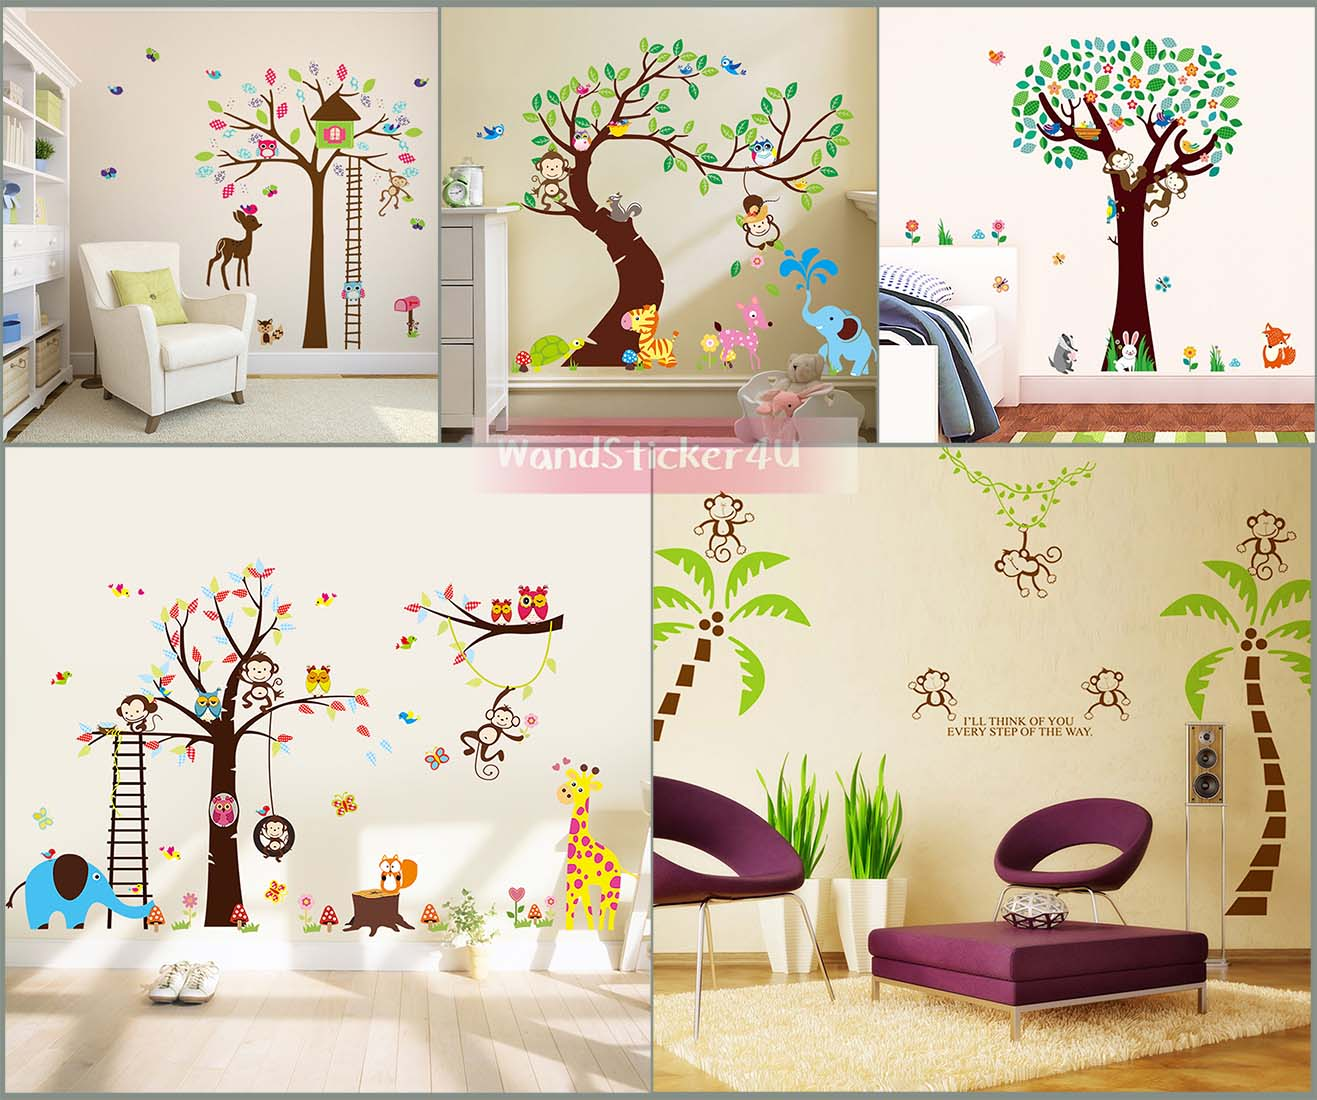 wandtattoo kinderzimmer baum afrika wald tiere zoo. Black Bedroom Furniture Sets. Home Design Ideas